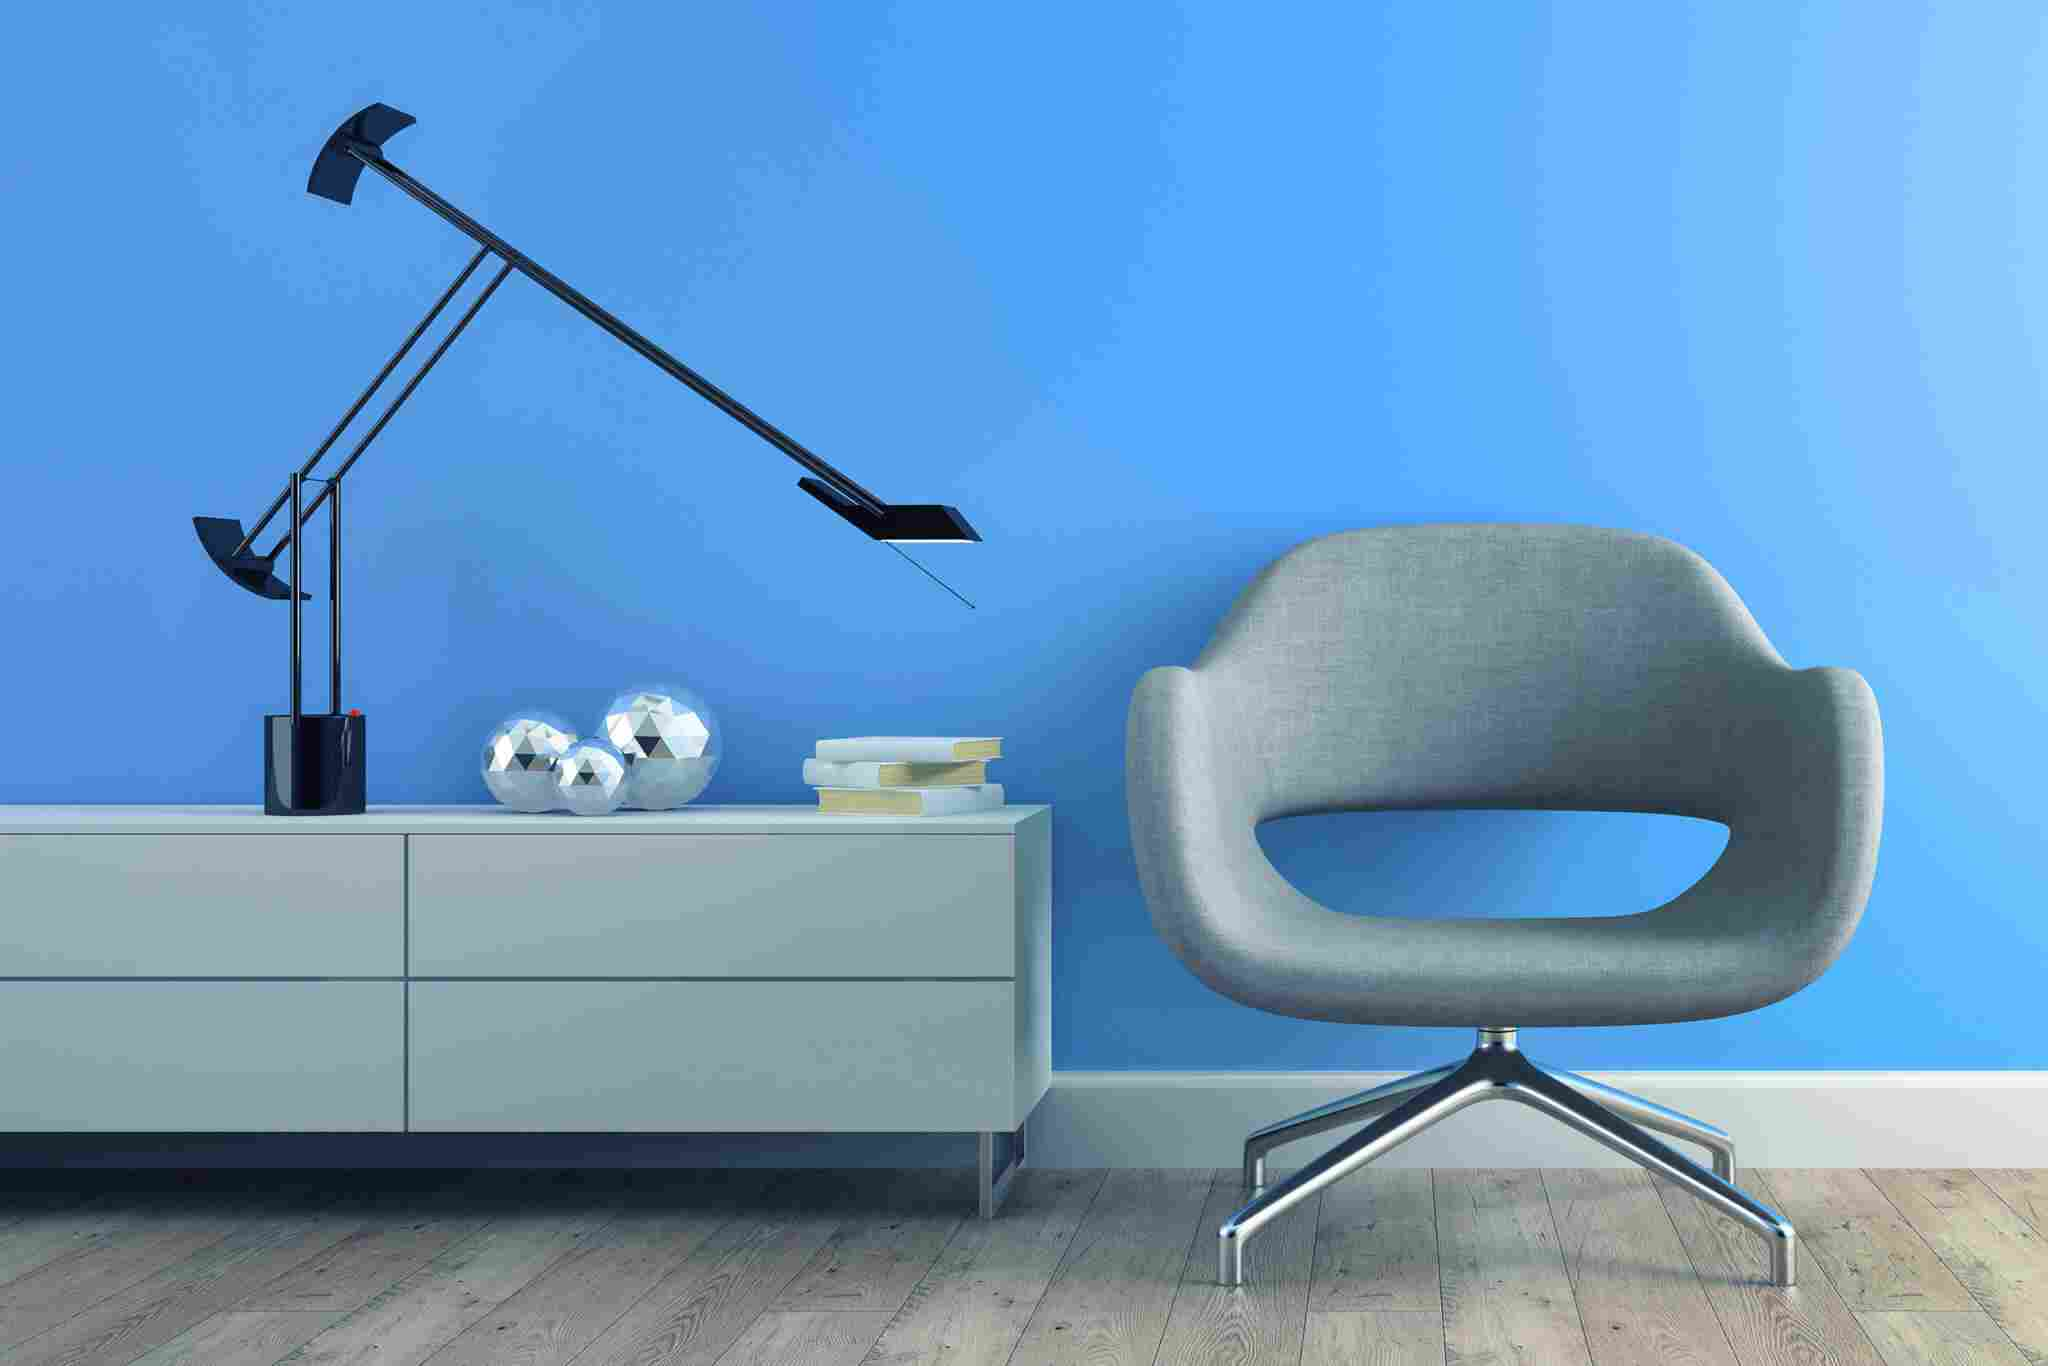 https://makespace.co.ke/wp-content/uploads/2017/05/image-chair-blue-wall-1.jpg